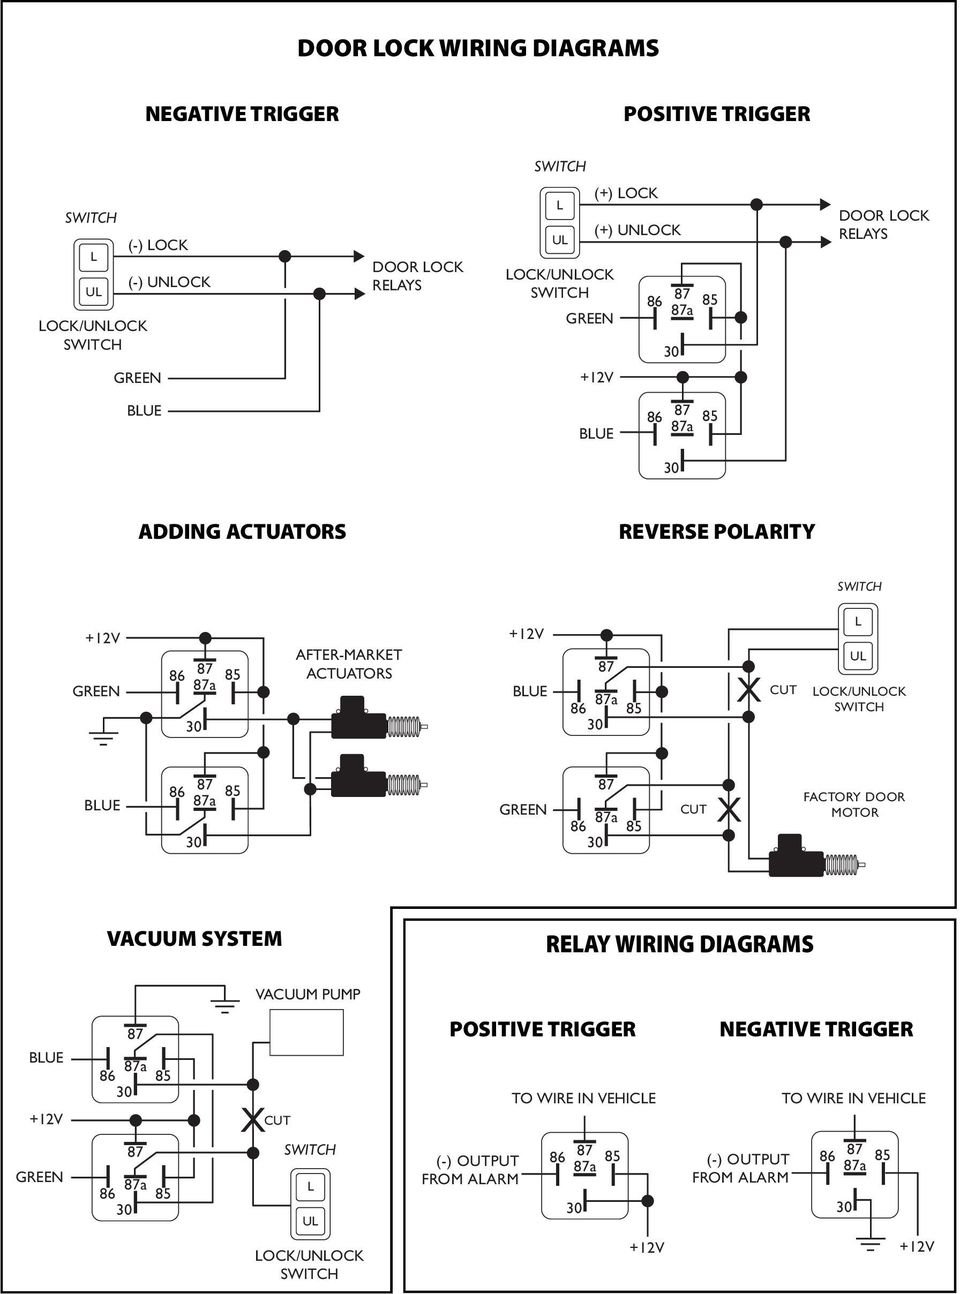 X CUT L UL LOCK/UNLOCK a 85 a 85 CUT X FACTORY DOOR MOTOR VACUUM SYSTEM RELAY WIRING DIAGRAMS VACUUM PUMP a 85 CUT POSITIVE